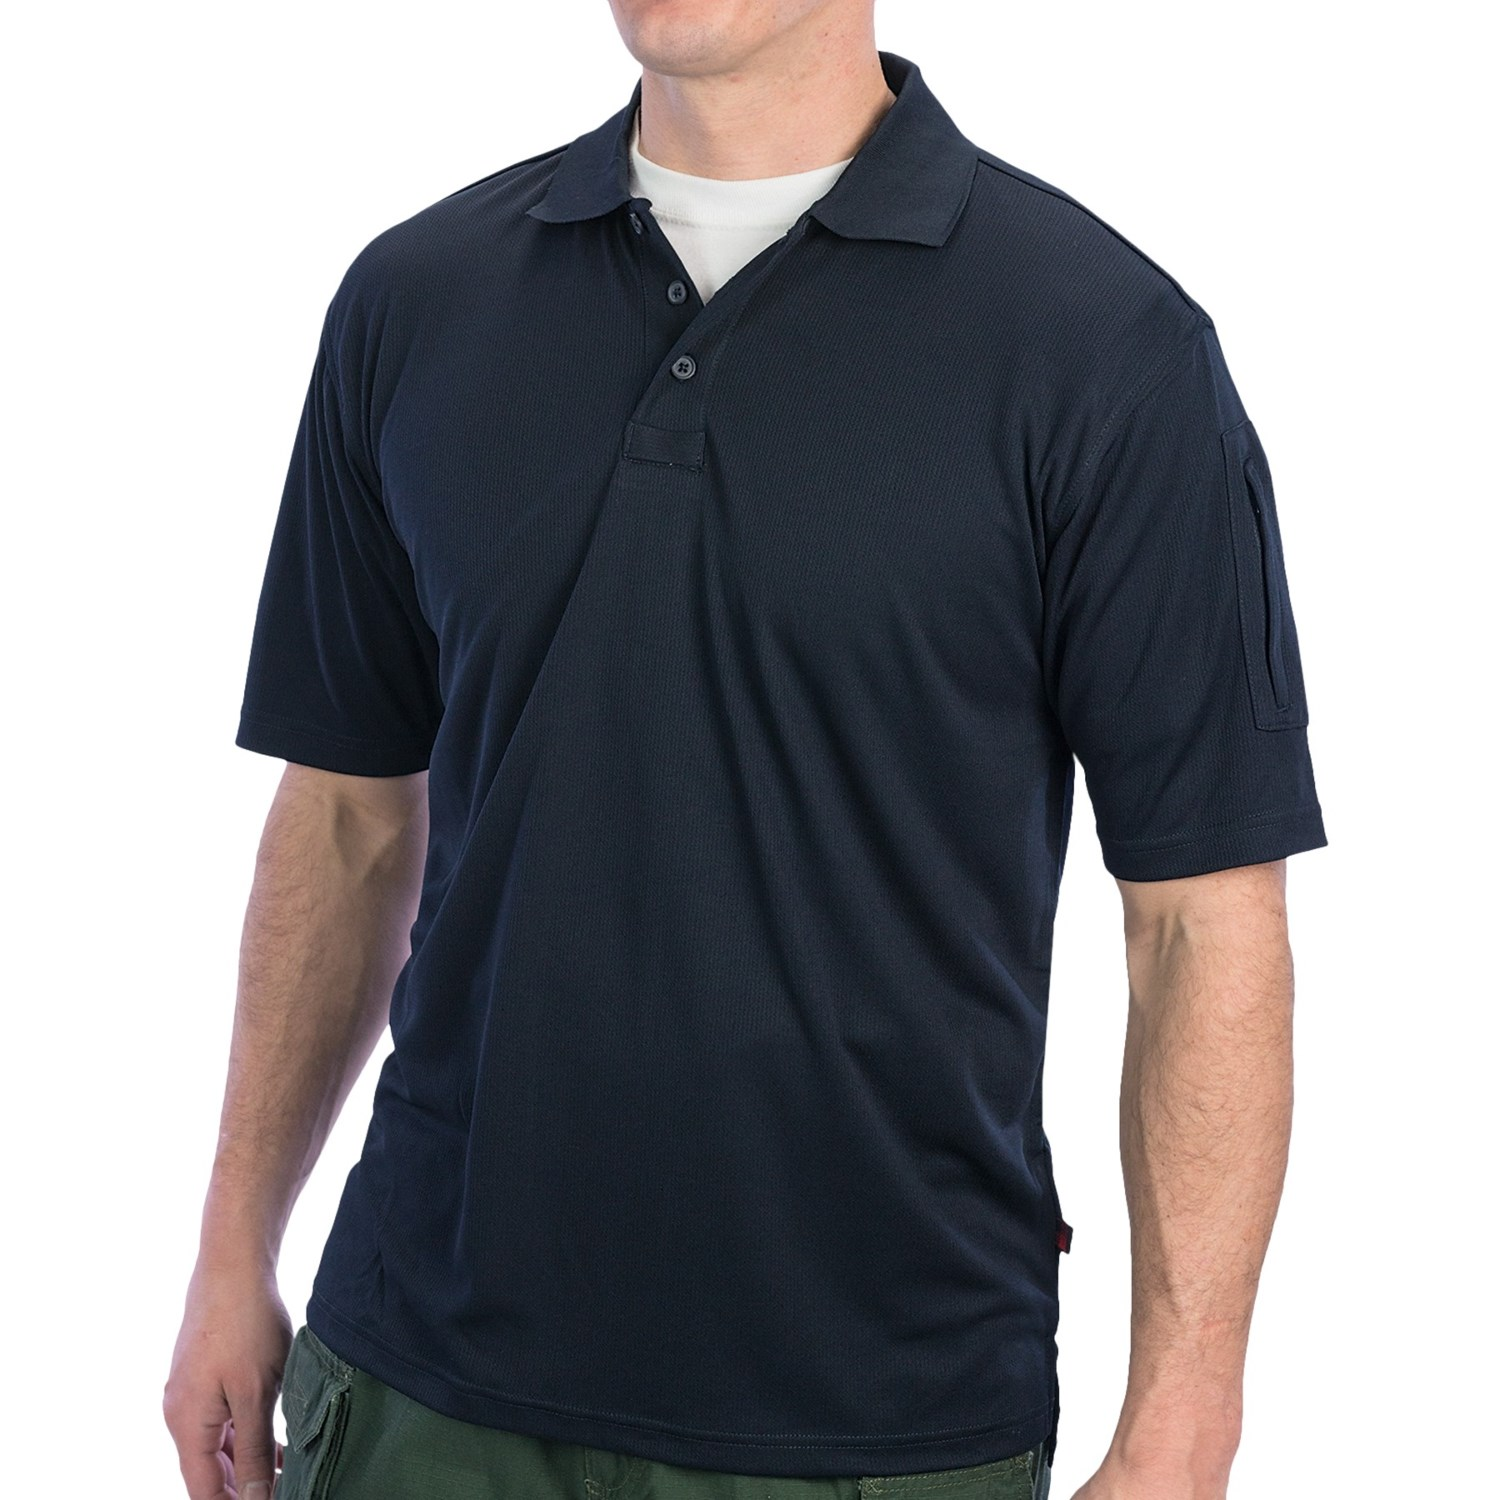 Men polo t shirts male models picture Man in polo shirt